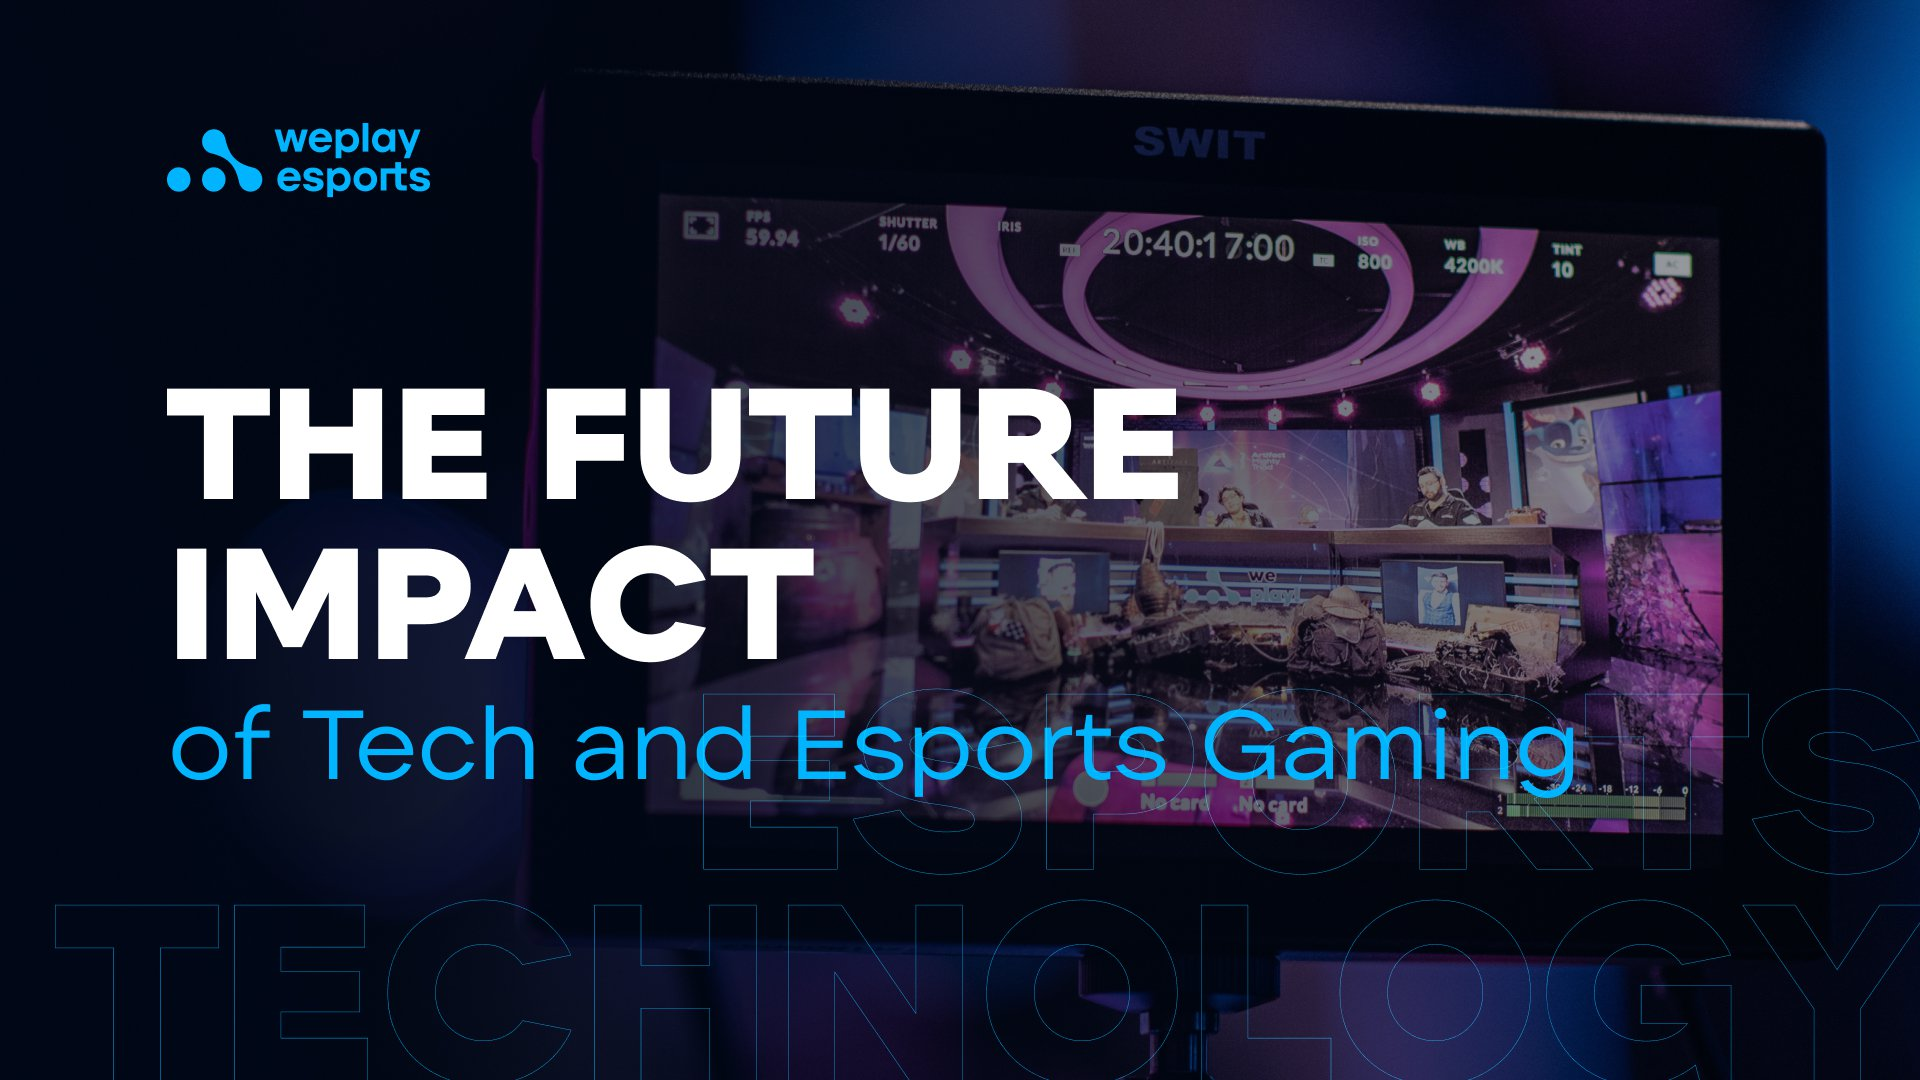 The Future Impact of Tech and Esports Gaming